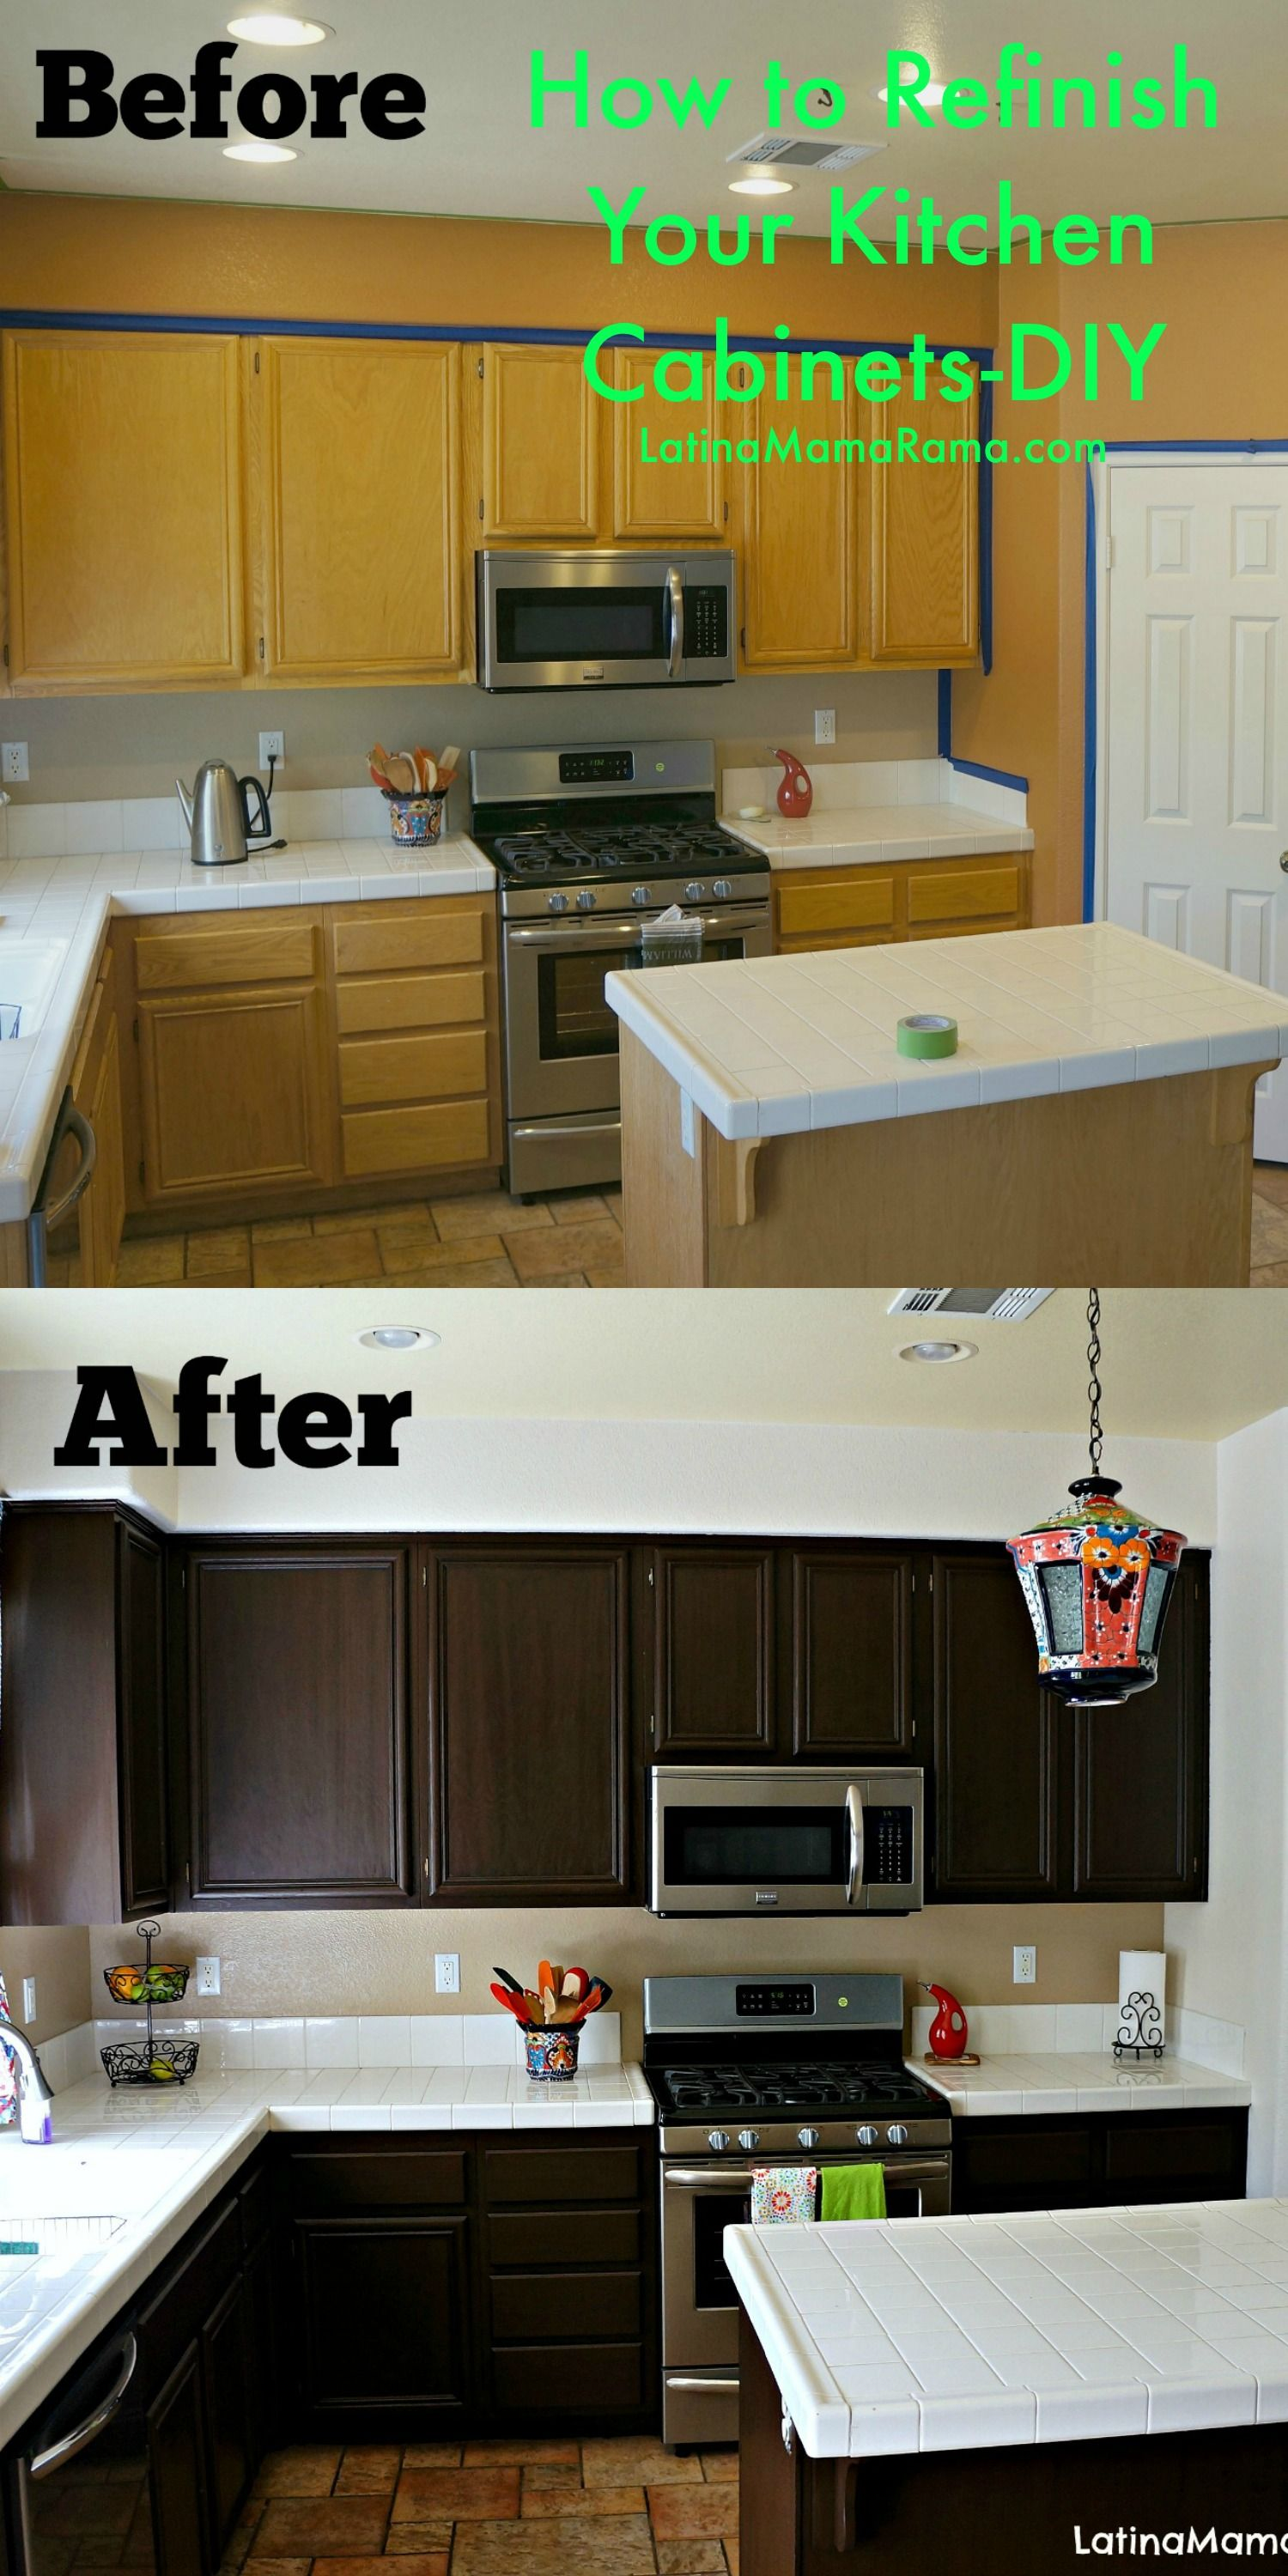 how to refinish your kitchen cabinets crafty 2 the core diy galore rh pinterest com White Oak Kitchen Cabinets White Oak Kitchen Cabinets